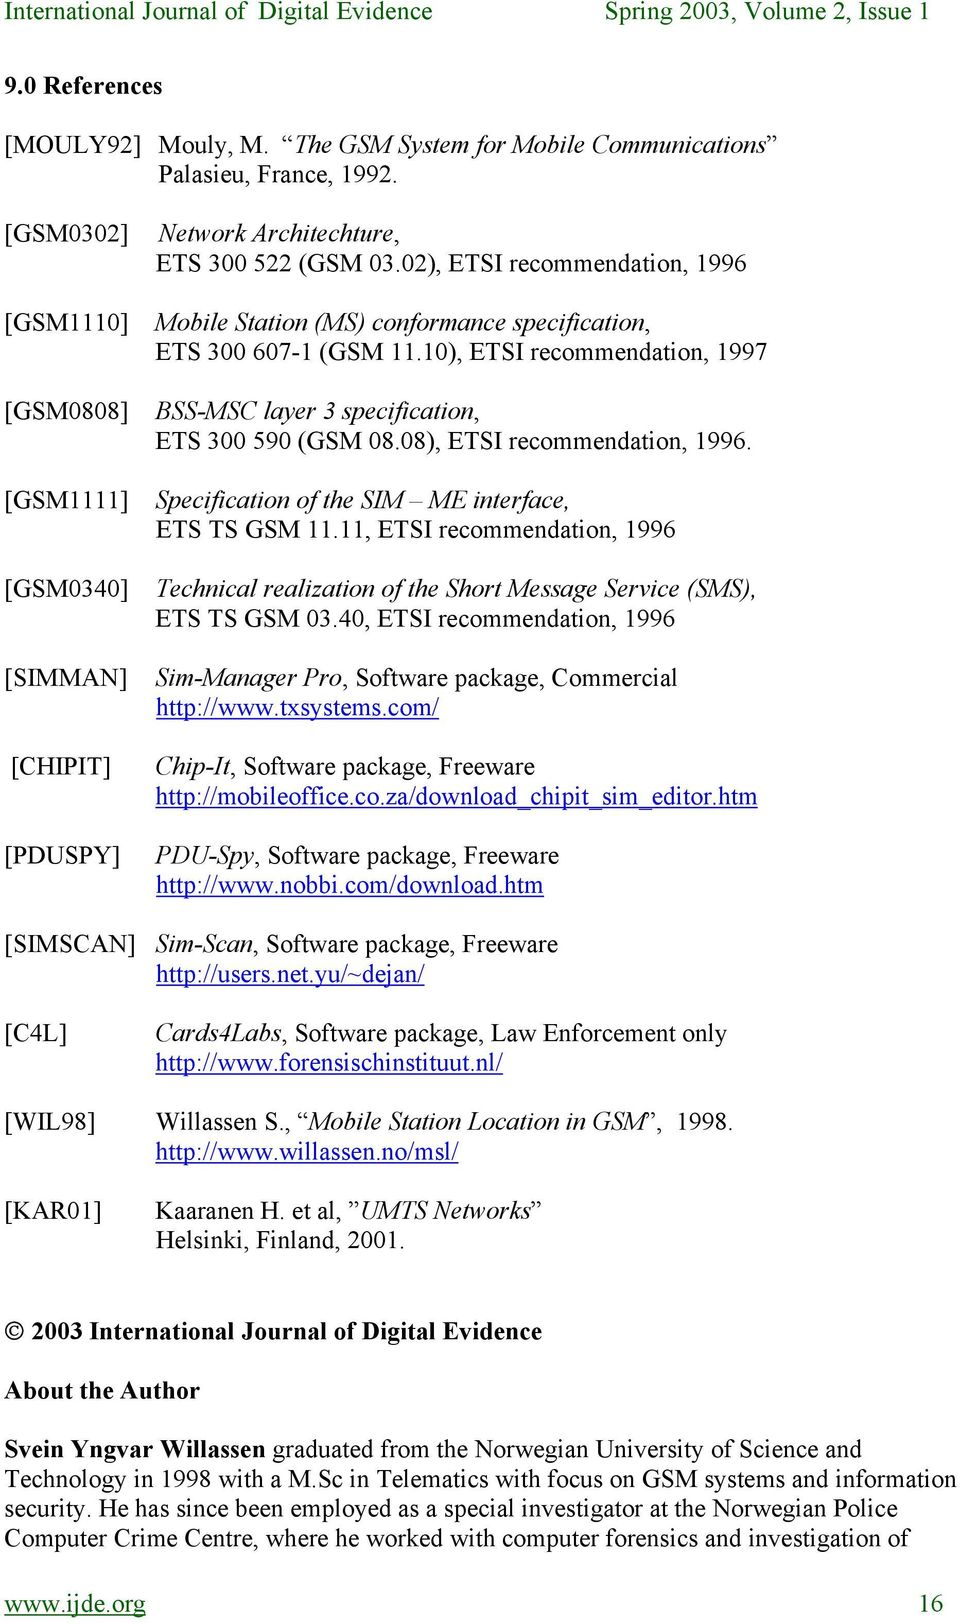 02), ETSI recommendation, 1996 Mobile Station (MS) conformance specification, ETS 300 607-1 (GSM 11.10), ETSI recommendation, 1997 BSS-MSC layer 3 specification, ETS 300 590 (GSM 08.